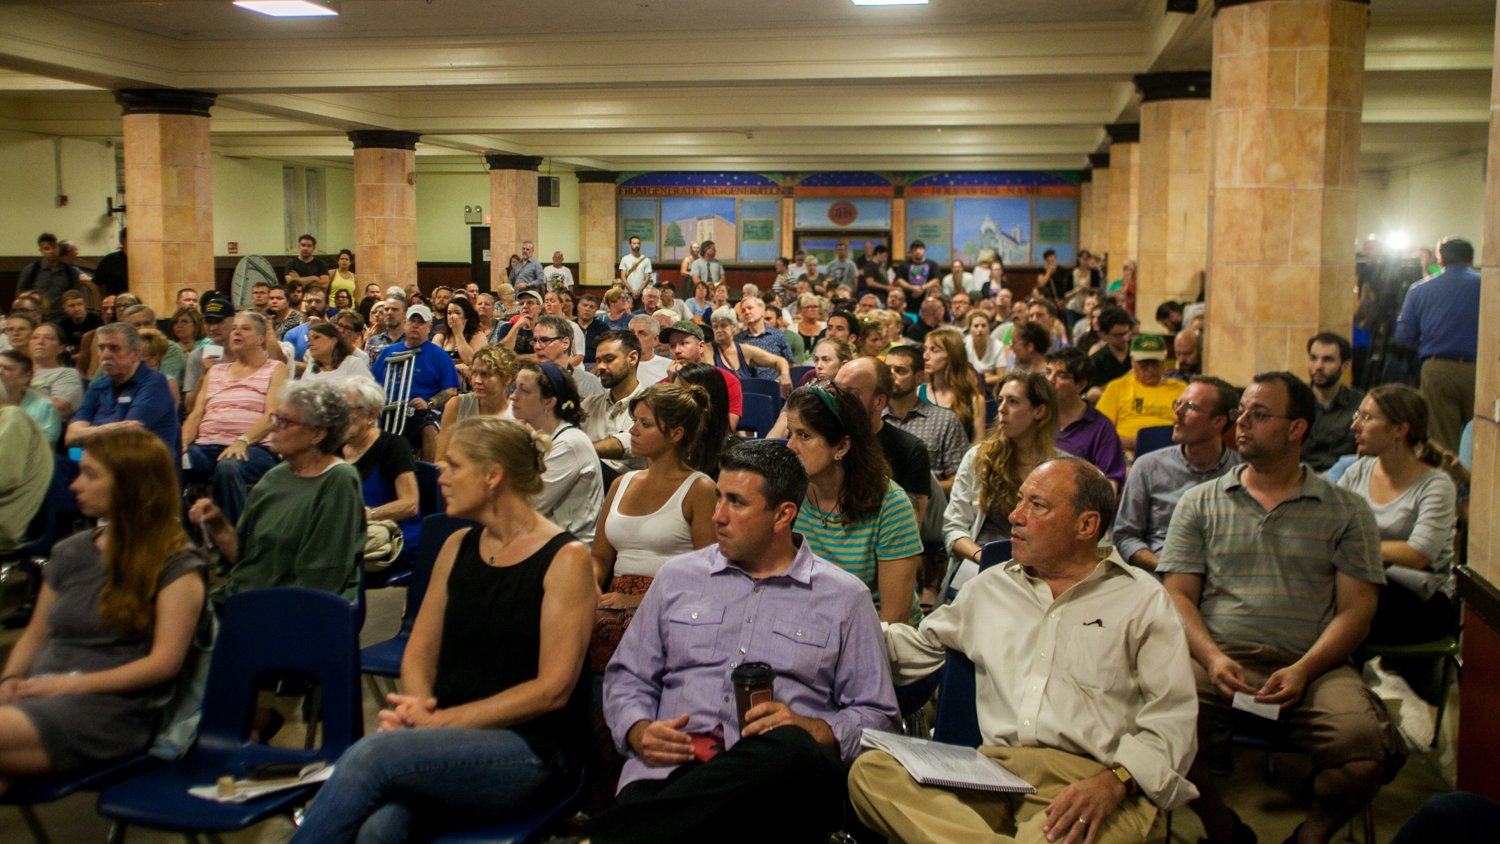 A packed house for St. Laurentius zoning meeting, September 20, 2016 | Brad Larrison for NewsWorks